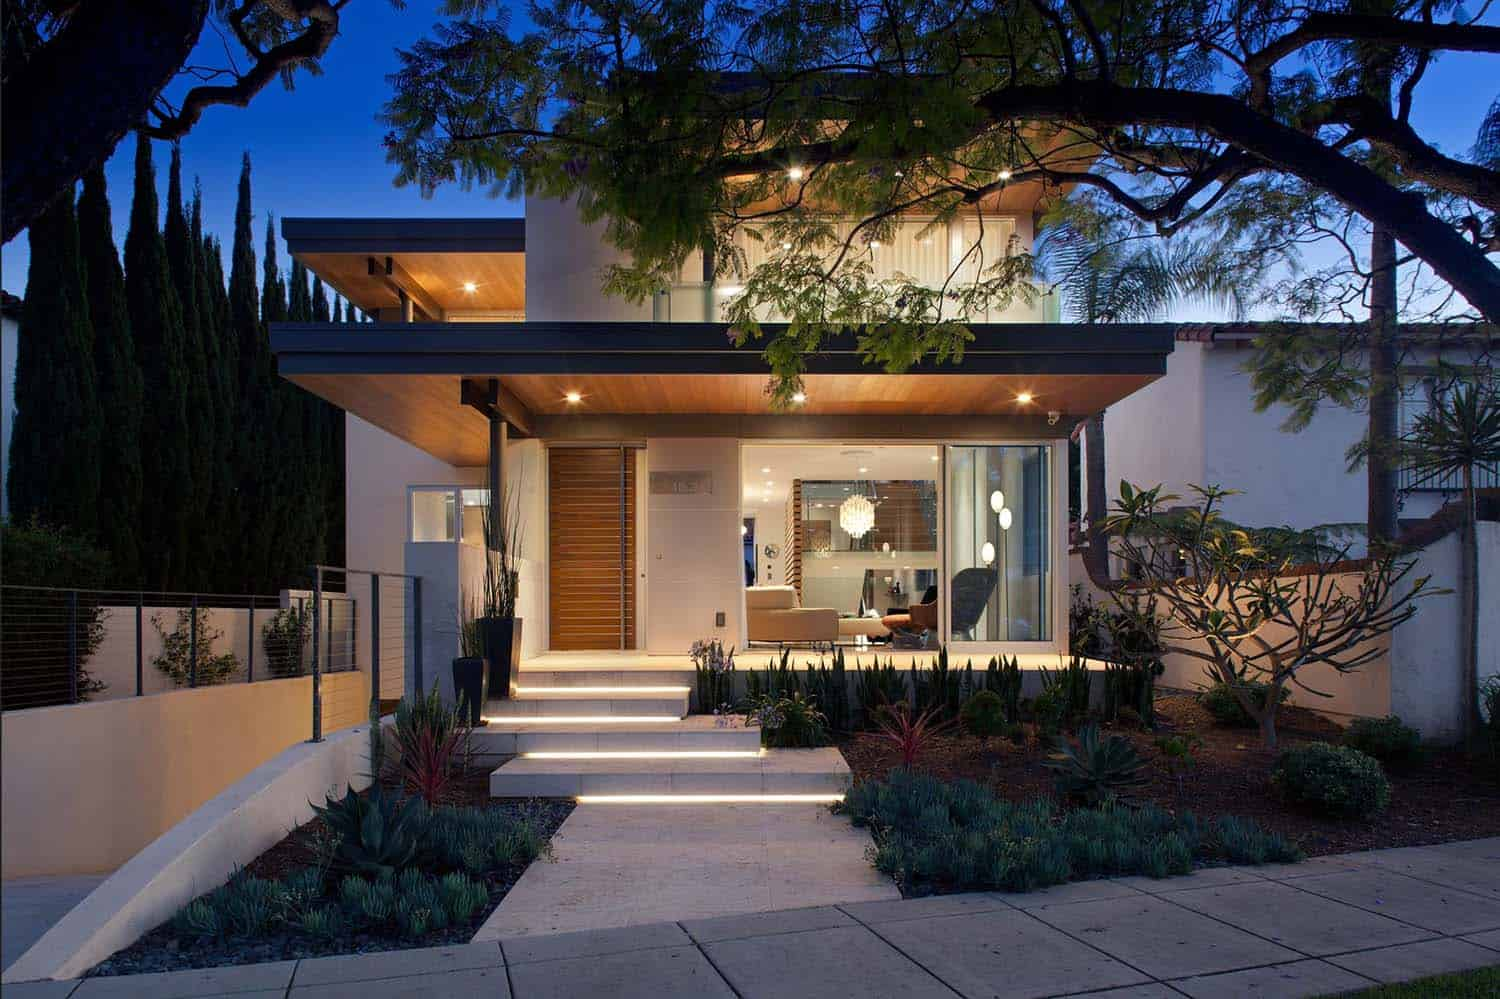 Southern california home features an elegant contemporary design - Top contemporary home design features ...